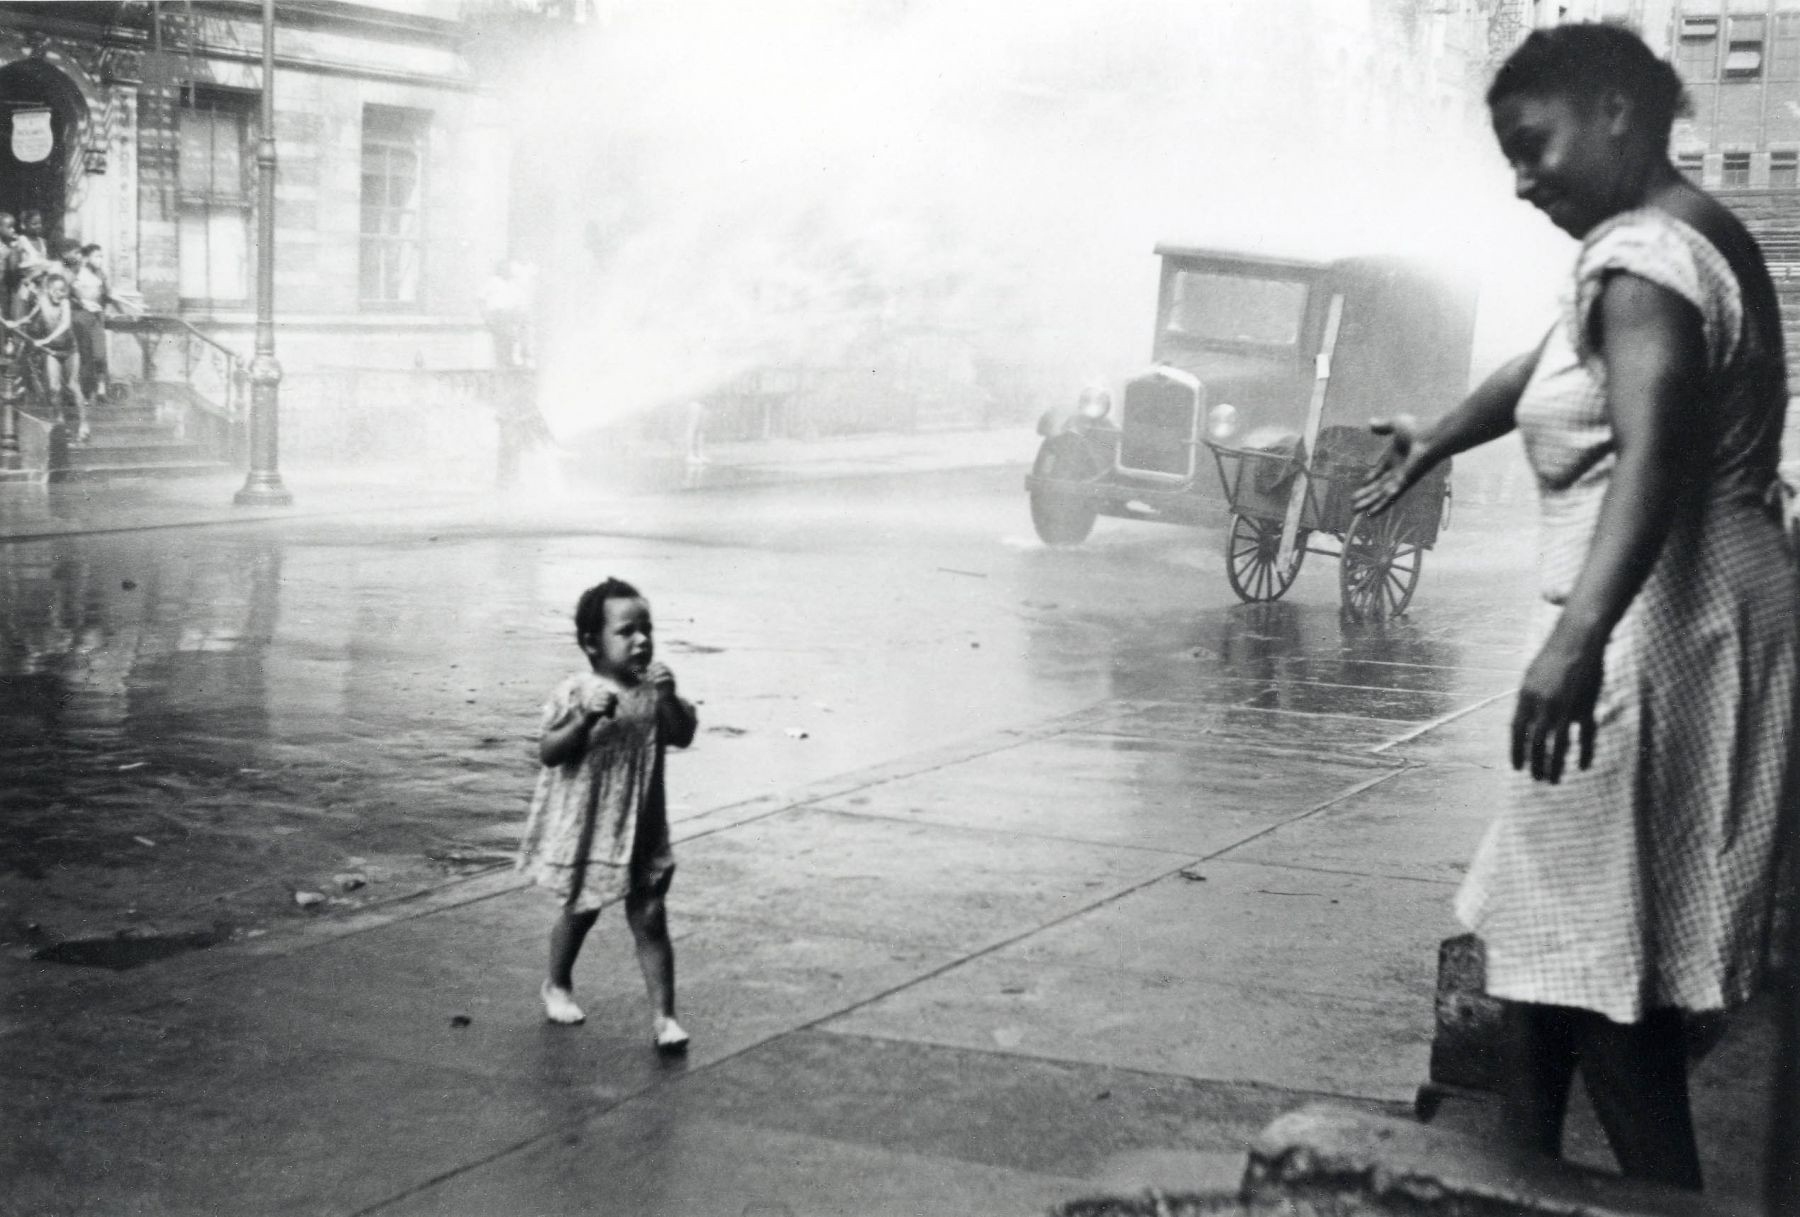 Helen levitt was one of the first photographers to capture street scenes